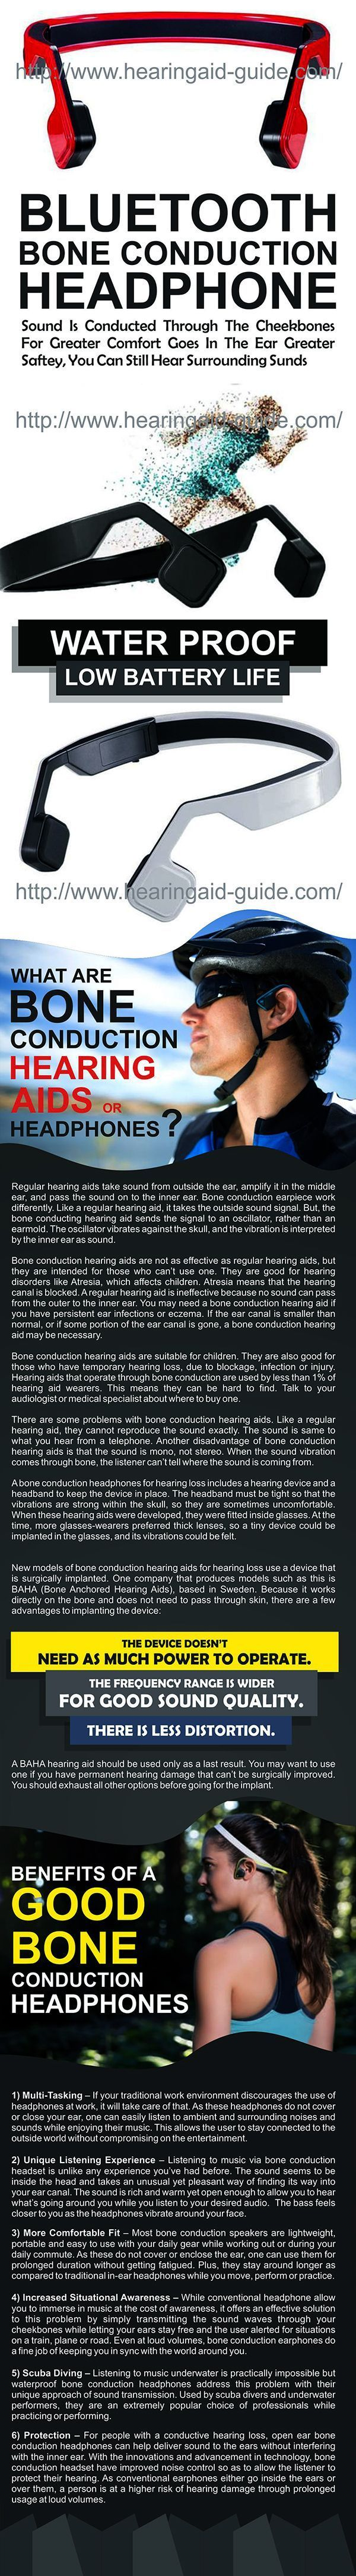 Best Bone Conduction Headphones Ever.....:) XOXO Best for those who can't wear Hearing aids due to their ear problems & it also future of headphones because it also used by others like for listening music which gives extremely joy to listen a soft or rocking song & for other activities too... #BestTinnitusRemedies